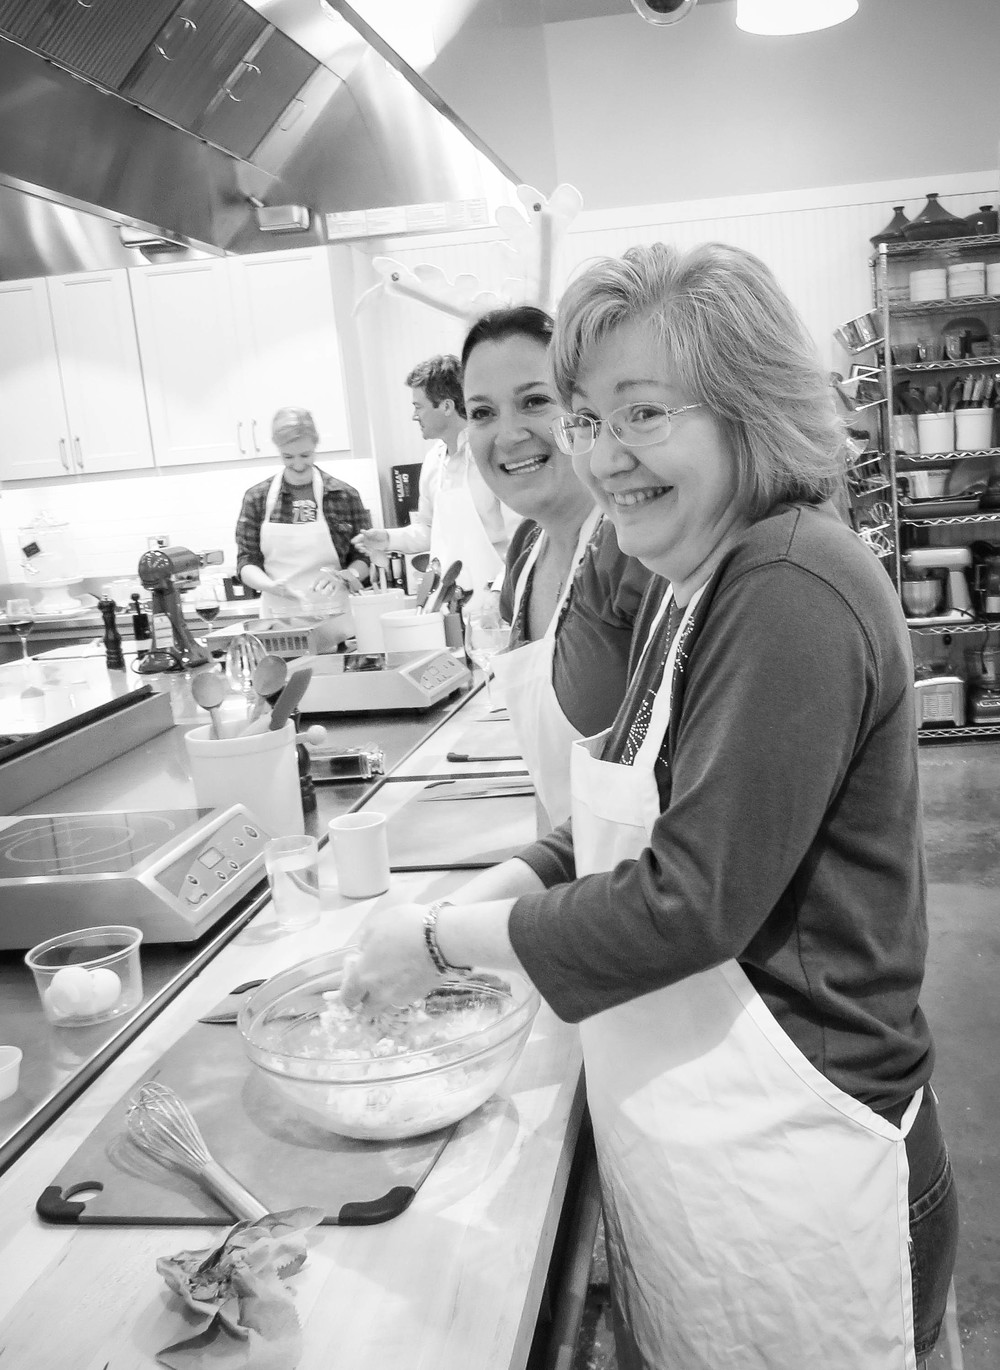 Lori Brandon and Melissa Troxel Make Pasta